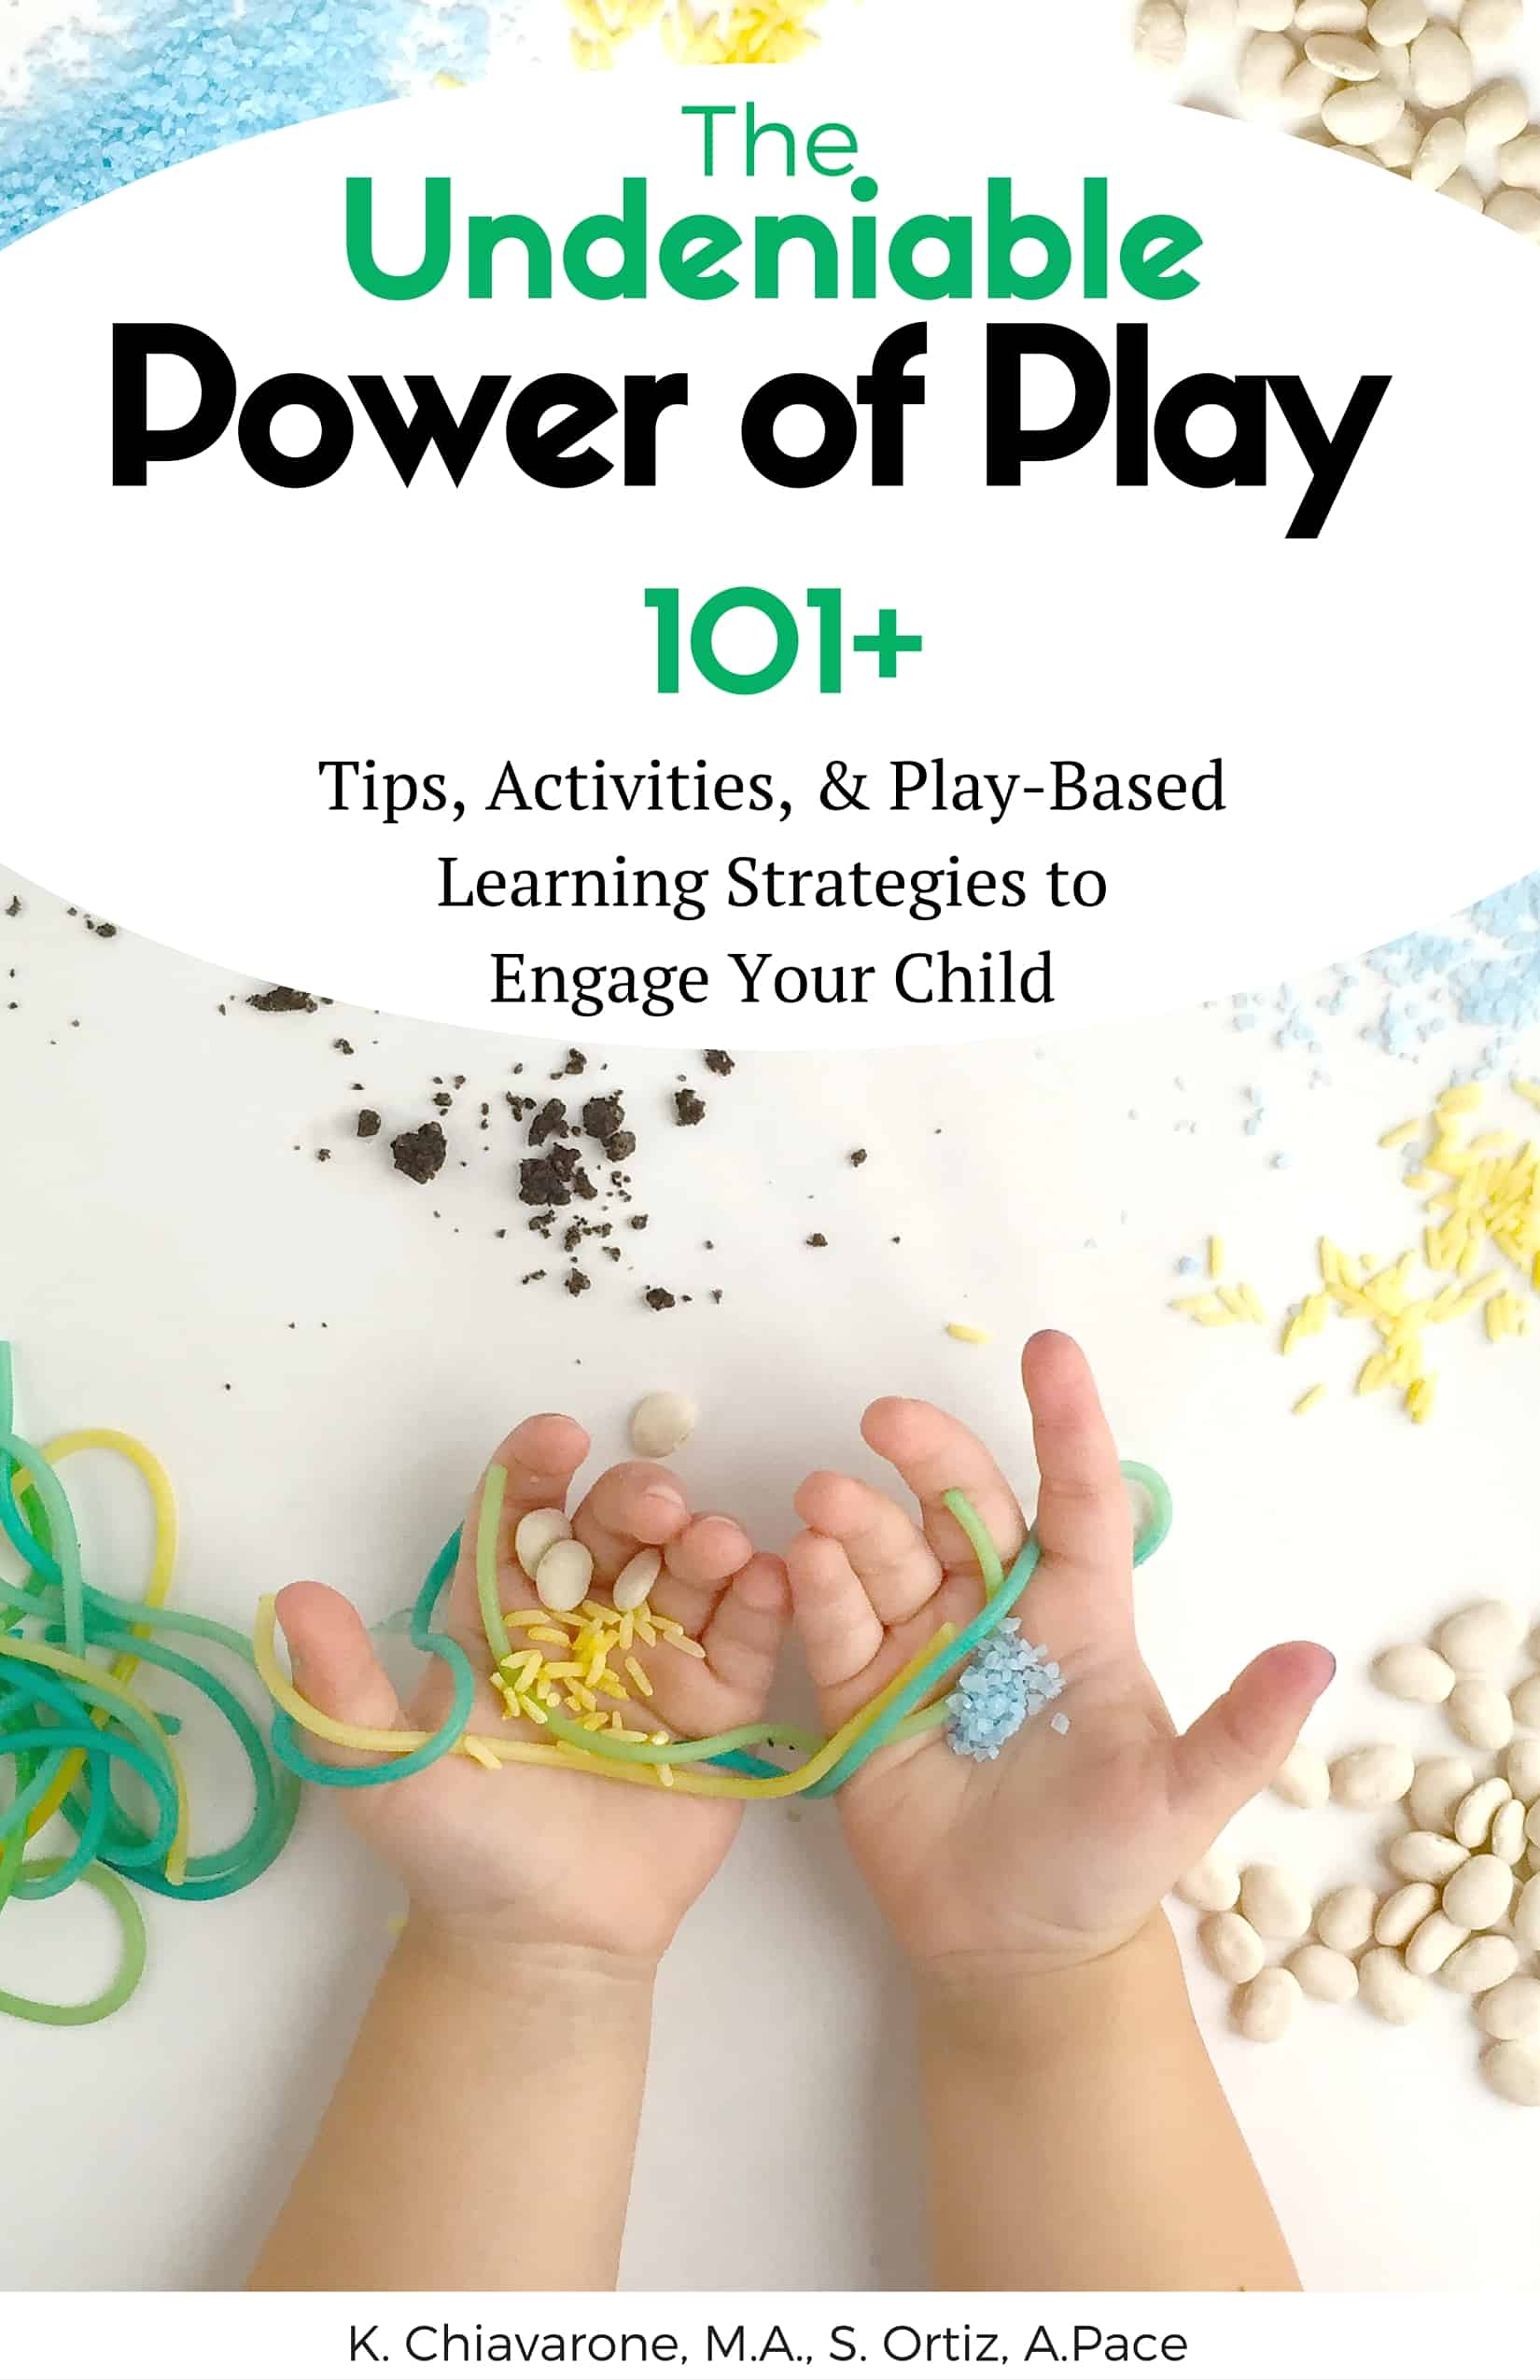 Yes you can facilitate play-based learning at home..and guess what...it's EASY! Find out some tips and tricks here in The Undeniable Power of Play, and see how you can turn your everyday materials and resources into tons of fun and learning for your kids!